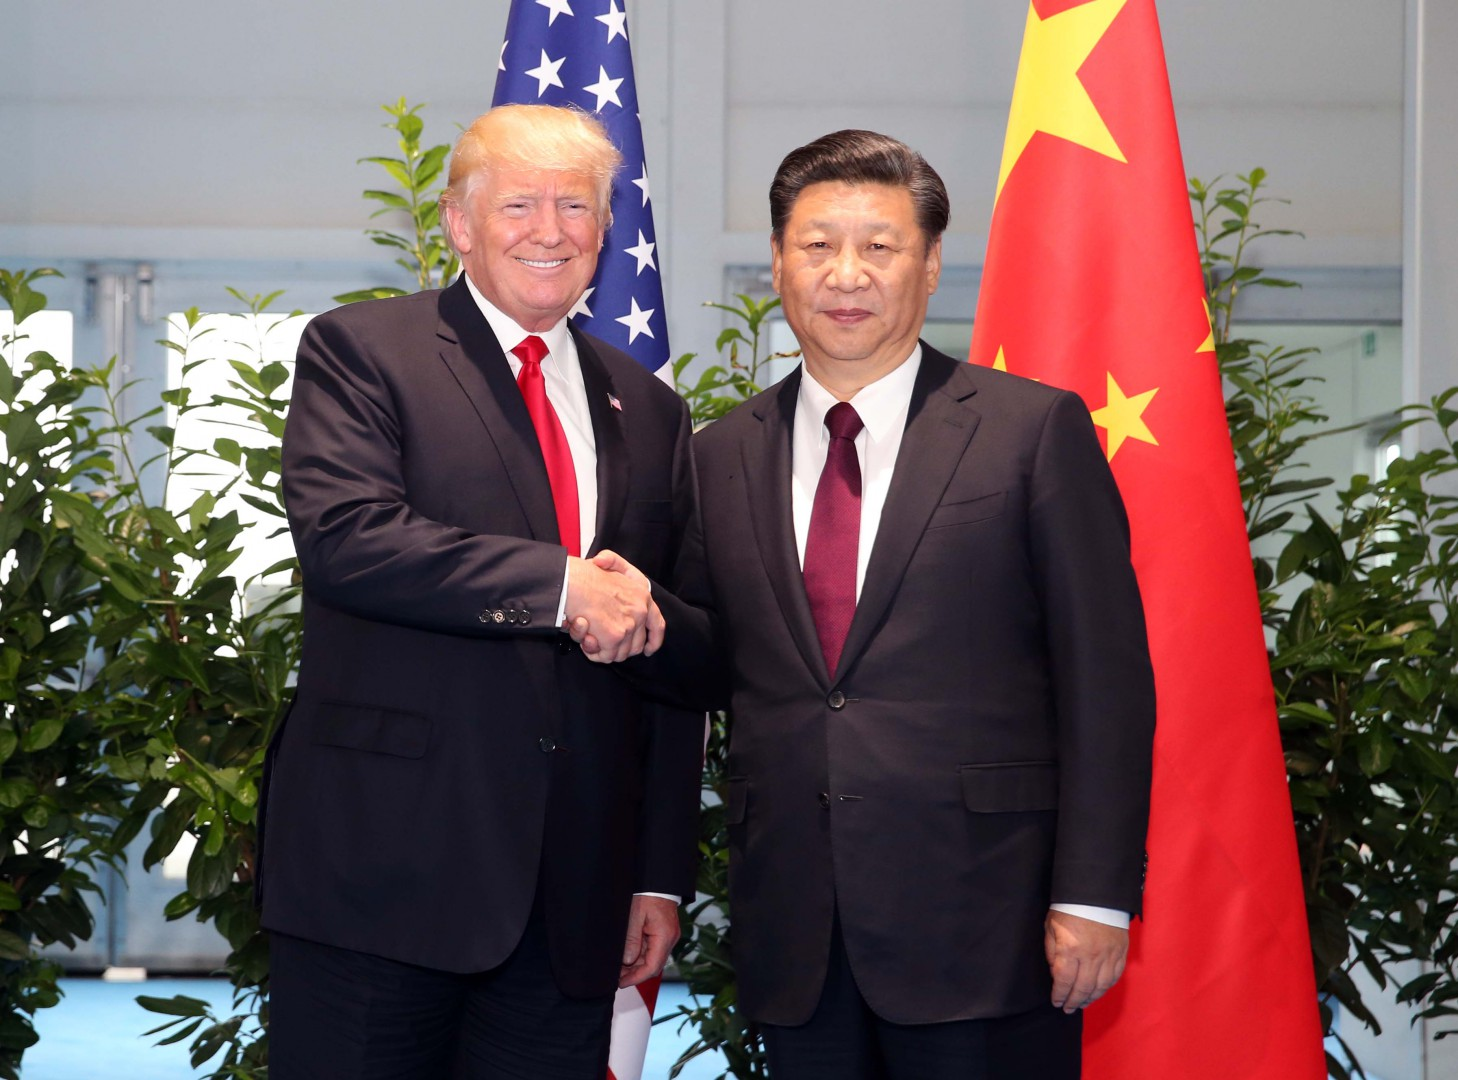 (170708) -- HAMBURG, July 8, 2017 (Xinhua) -- Chinese President Xi Jinping (R) meets with his U.S. counterpart Donald Trump to discuss bilateral ties and global hot-spot issues on the sidelines of a Group of 20 (G20) summit, in Hamburg, Germany, July 8, 2017.  (Xinhua/Yao Dawei) (lb)